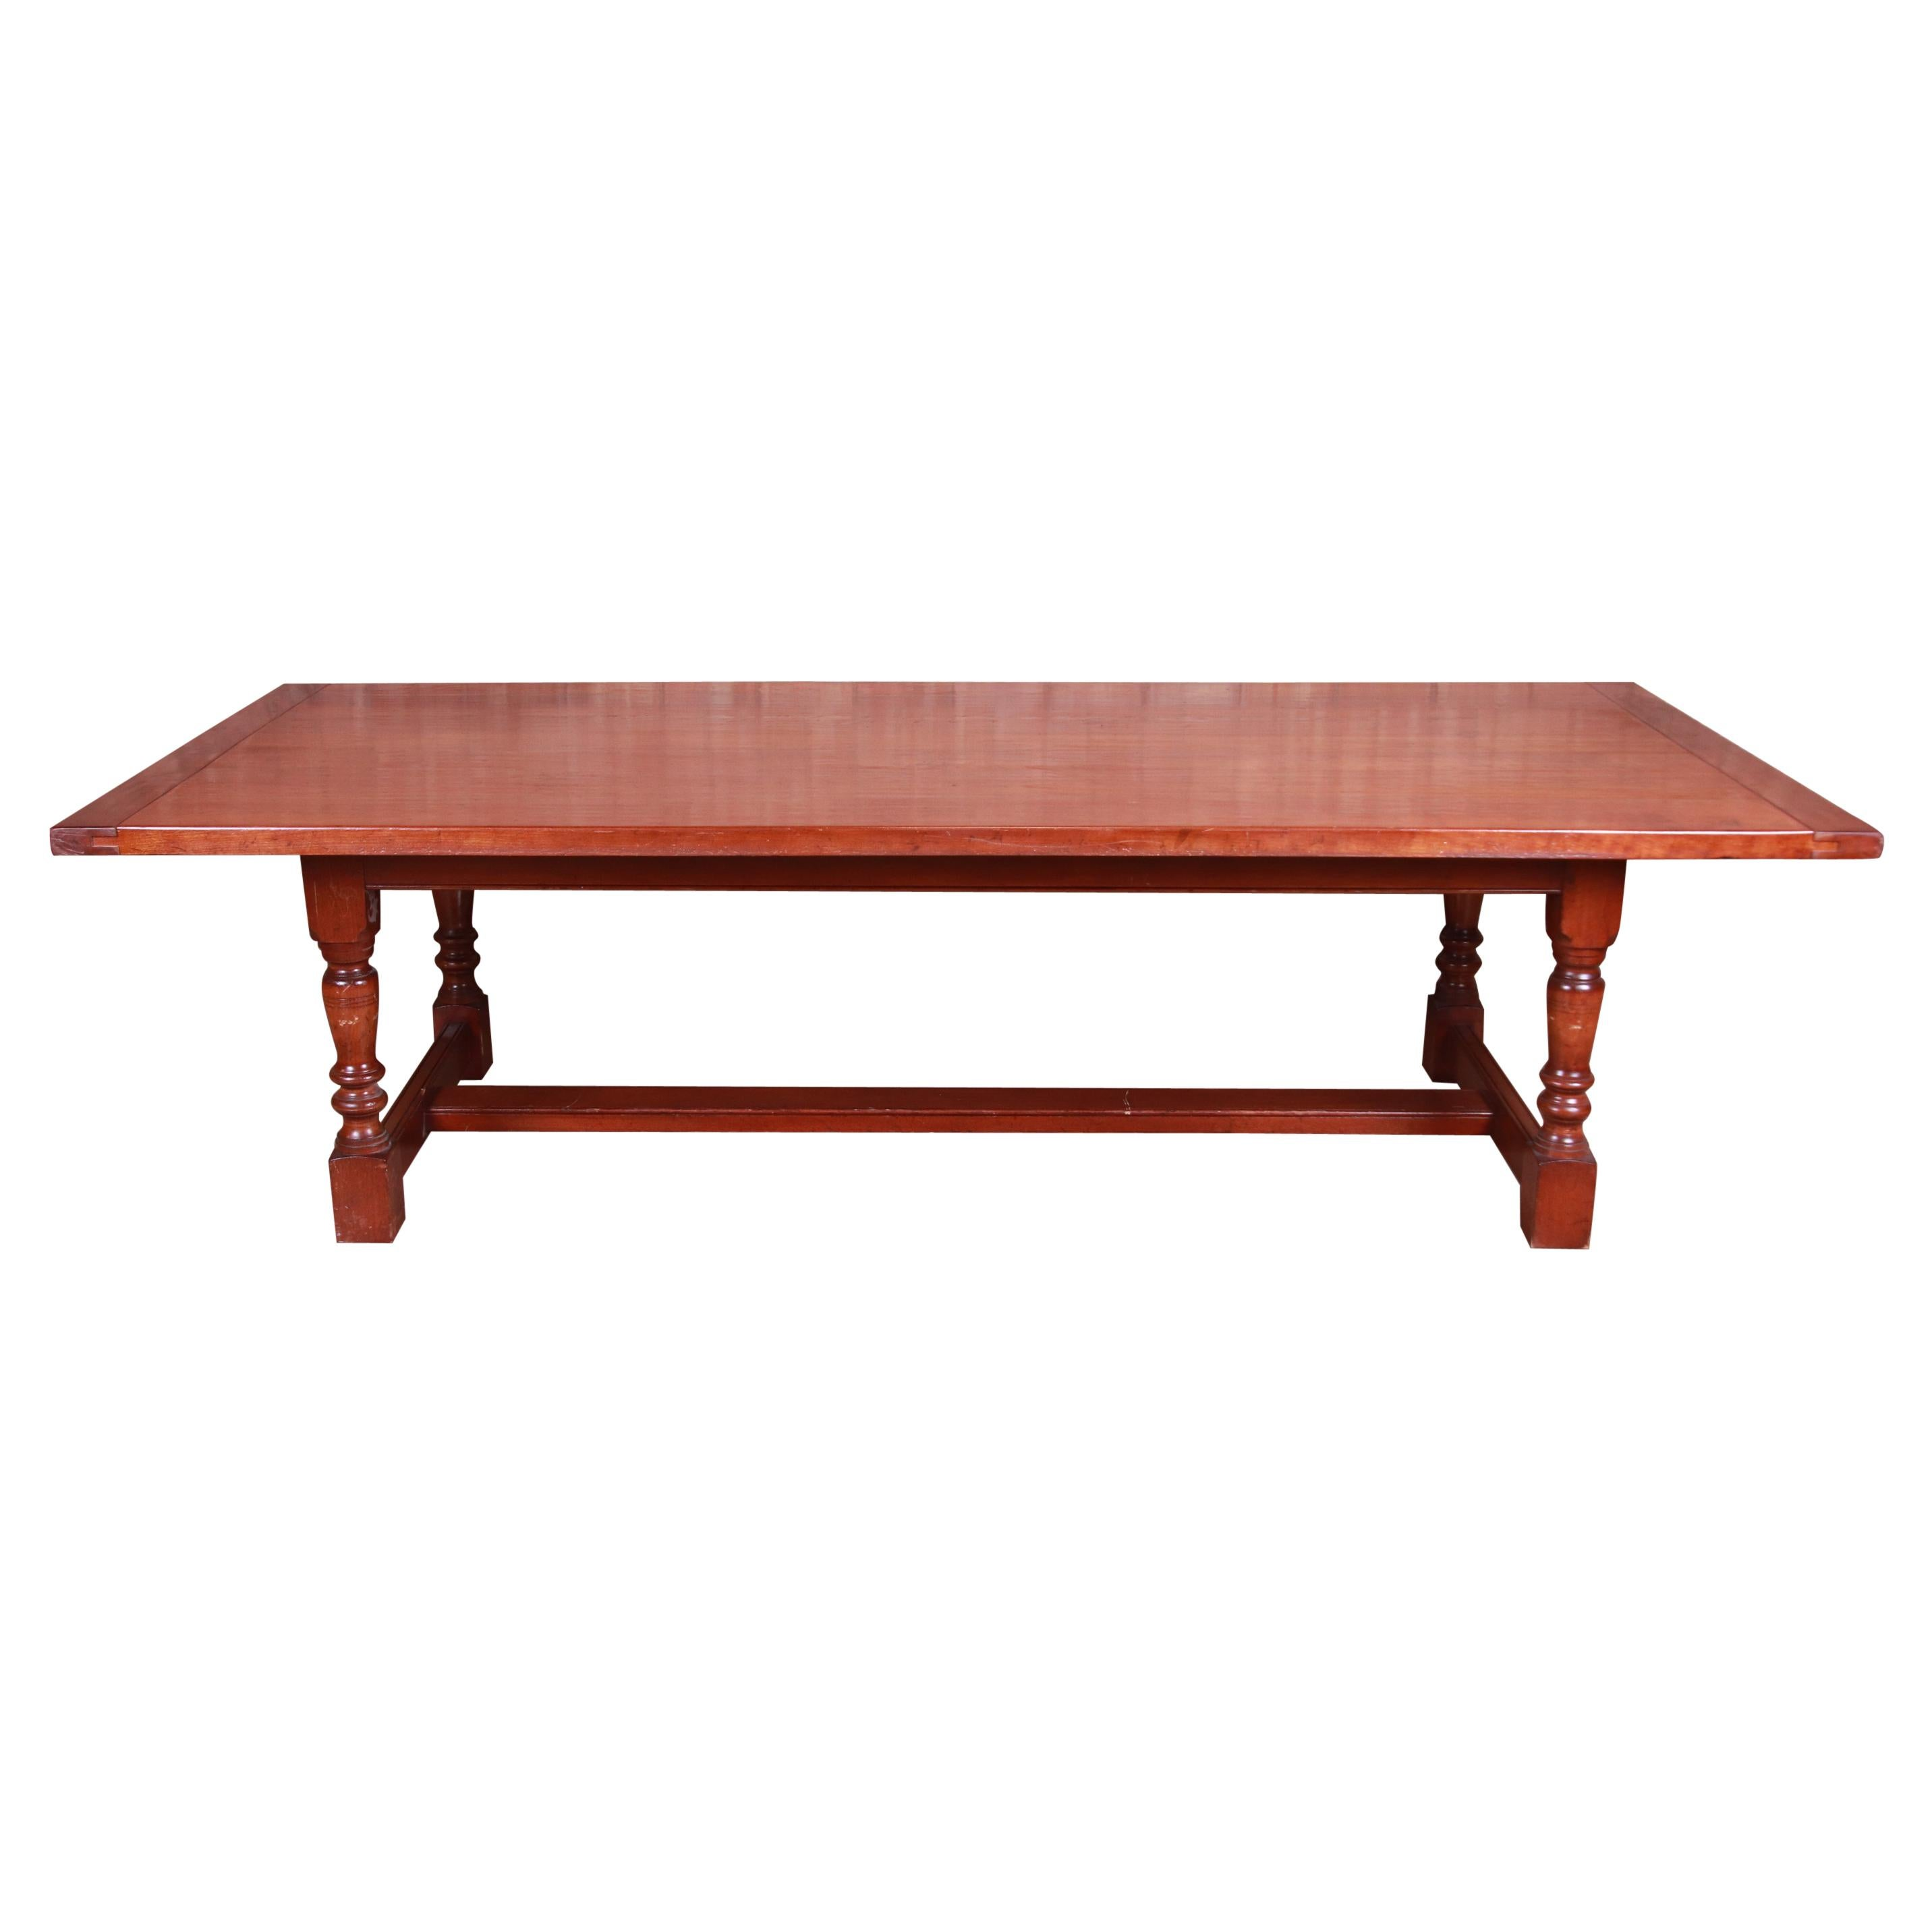 Antique English Cherry Wood Farmhouse Refectory Dining Table, Circa 1890